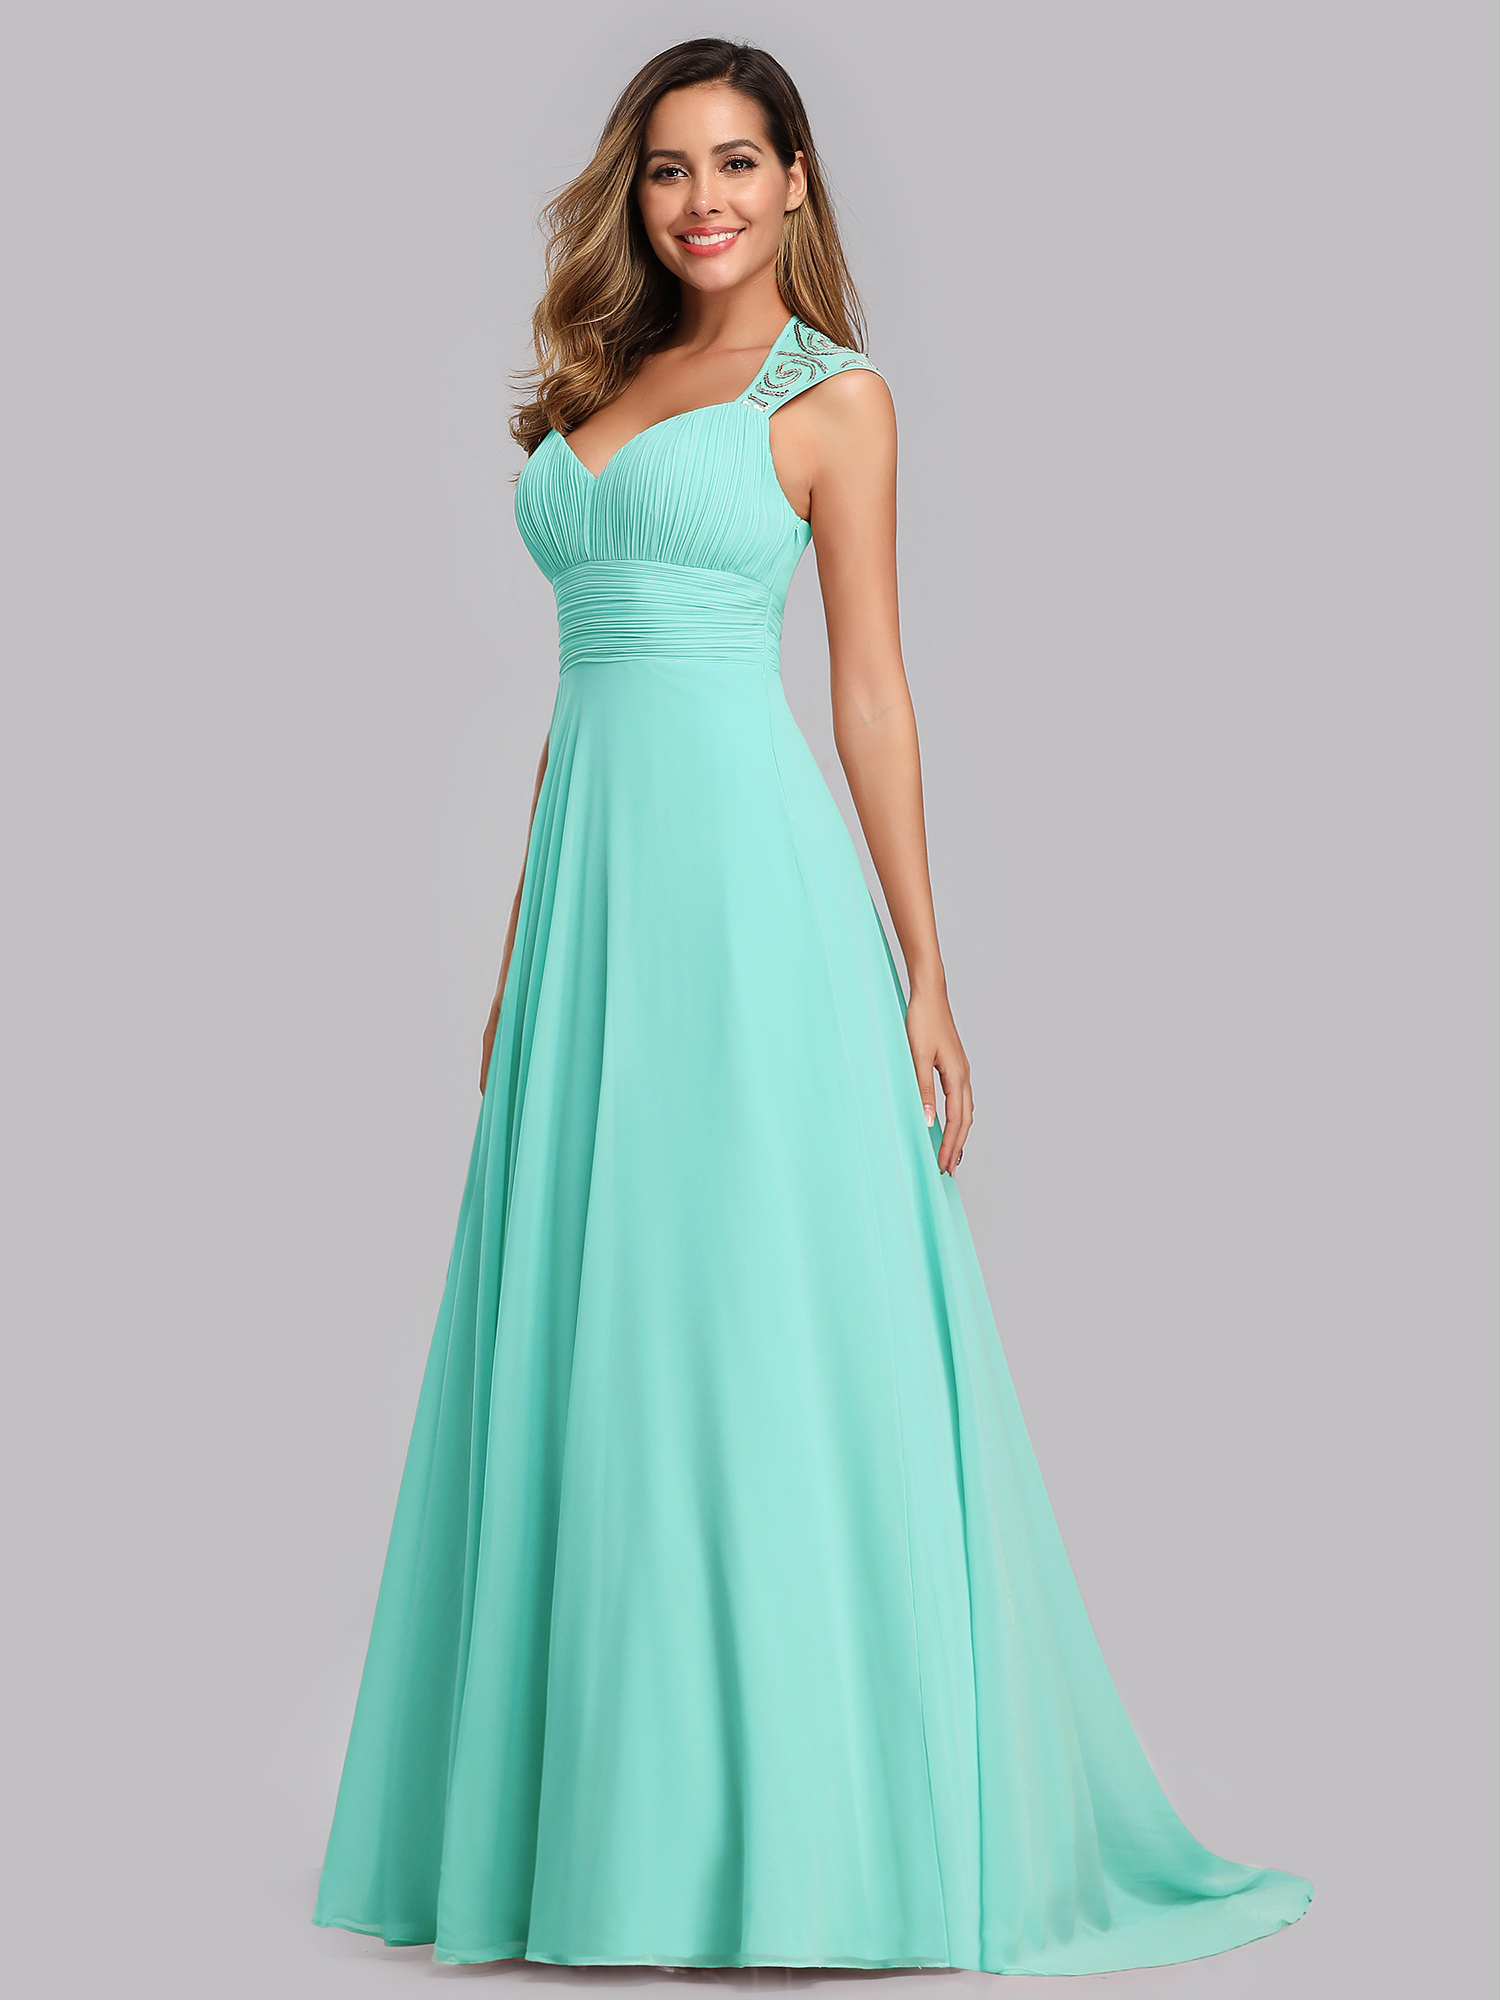 Ever-Pretty US Long Maxi Chiffon Formal Evening Dresses V-Neck Party ...